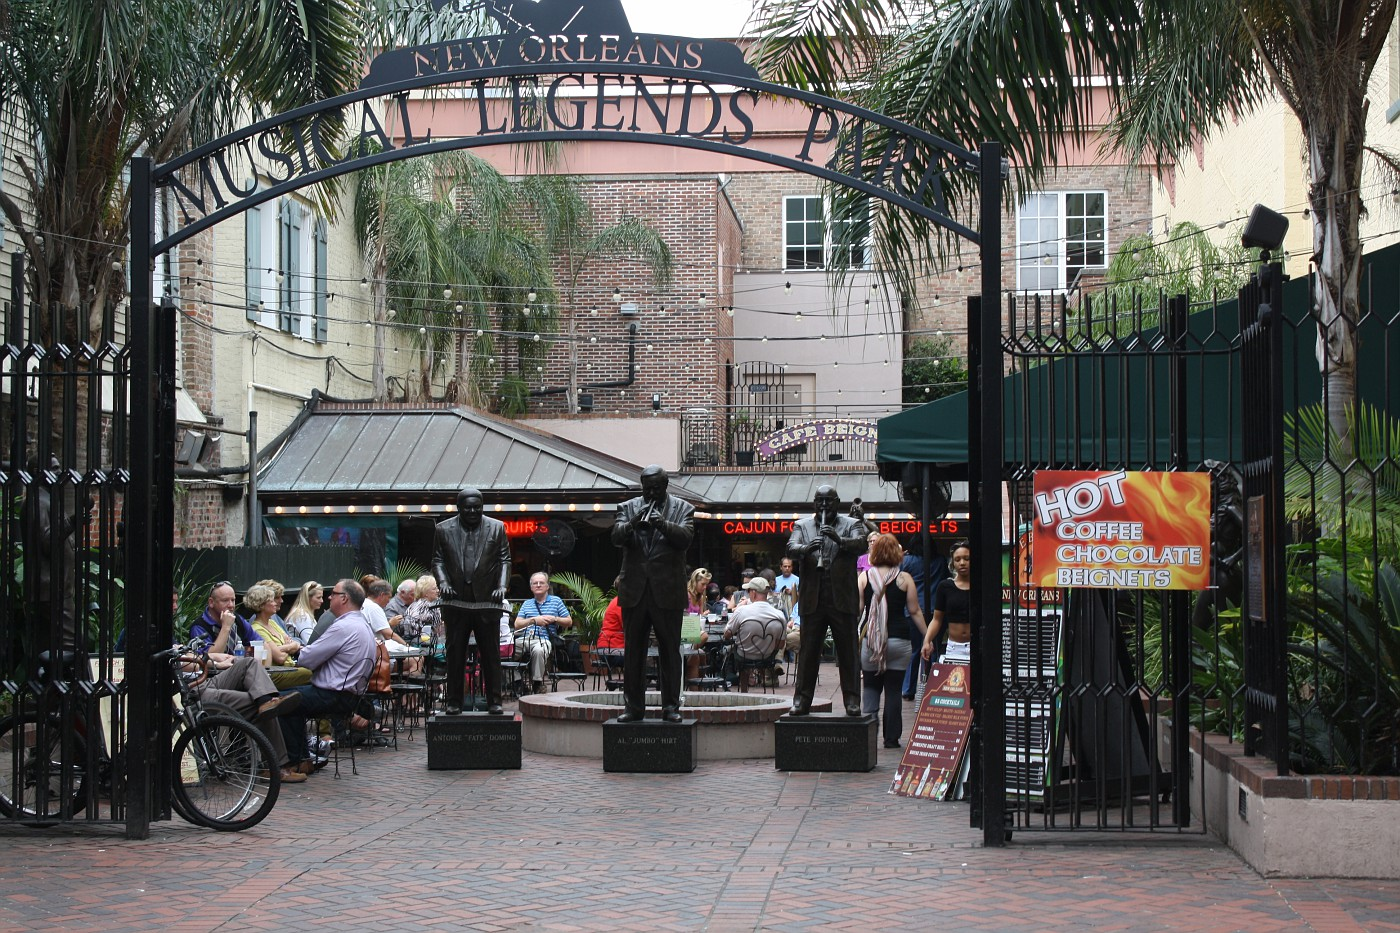 Our trip started in New Orleans where music is everywhere.